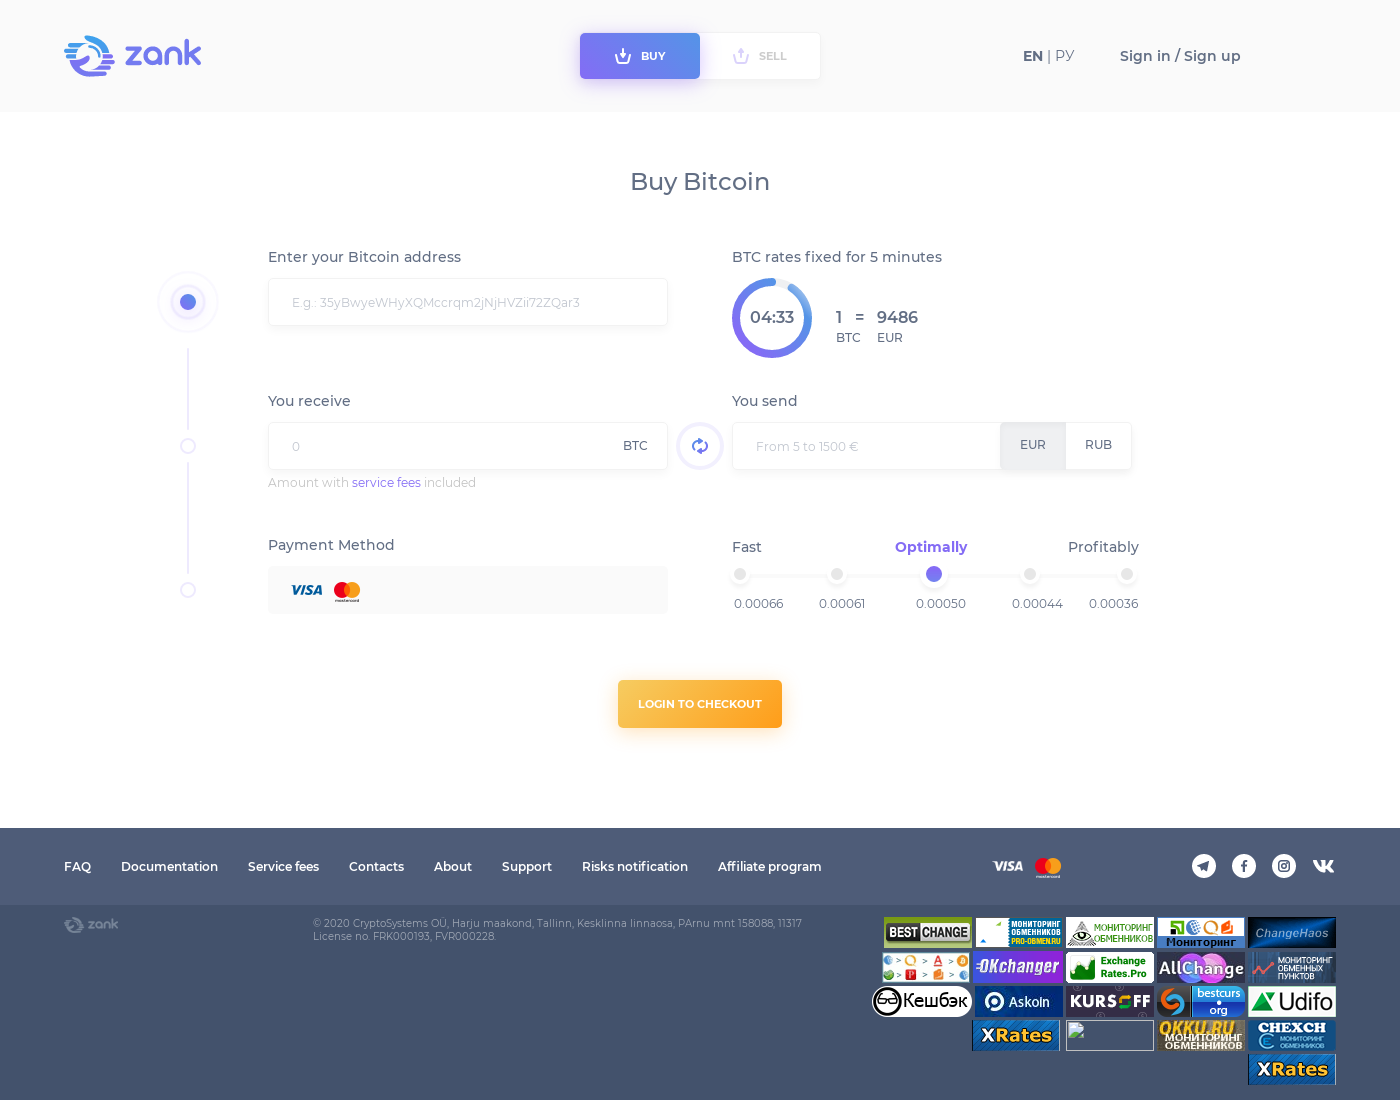 Zank user interface: the home page in English